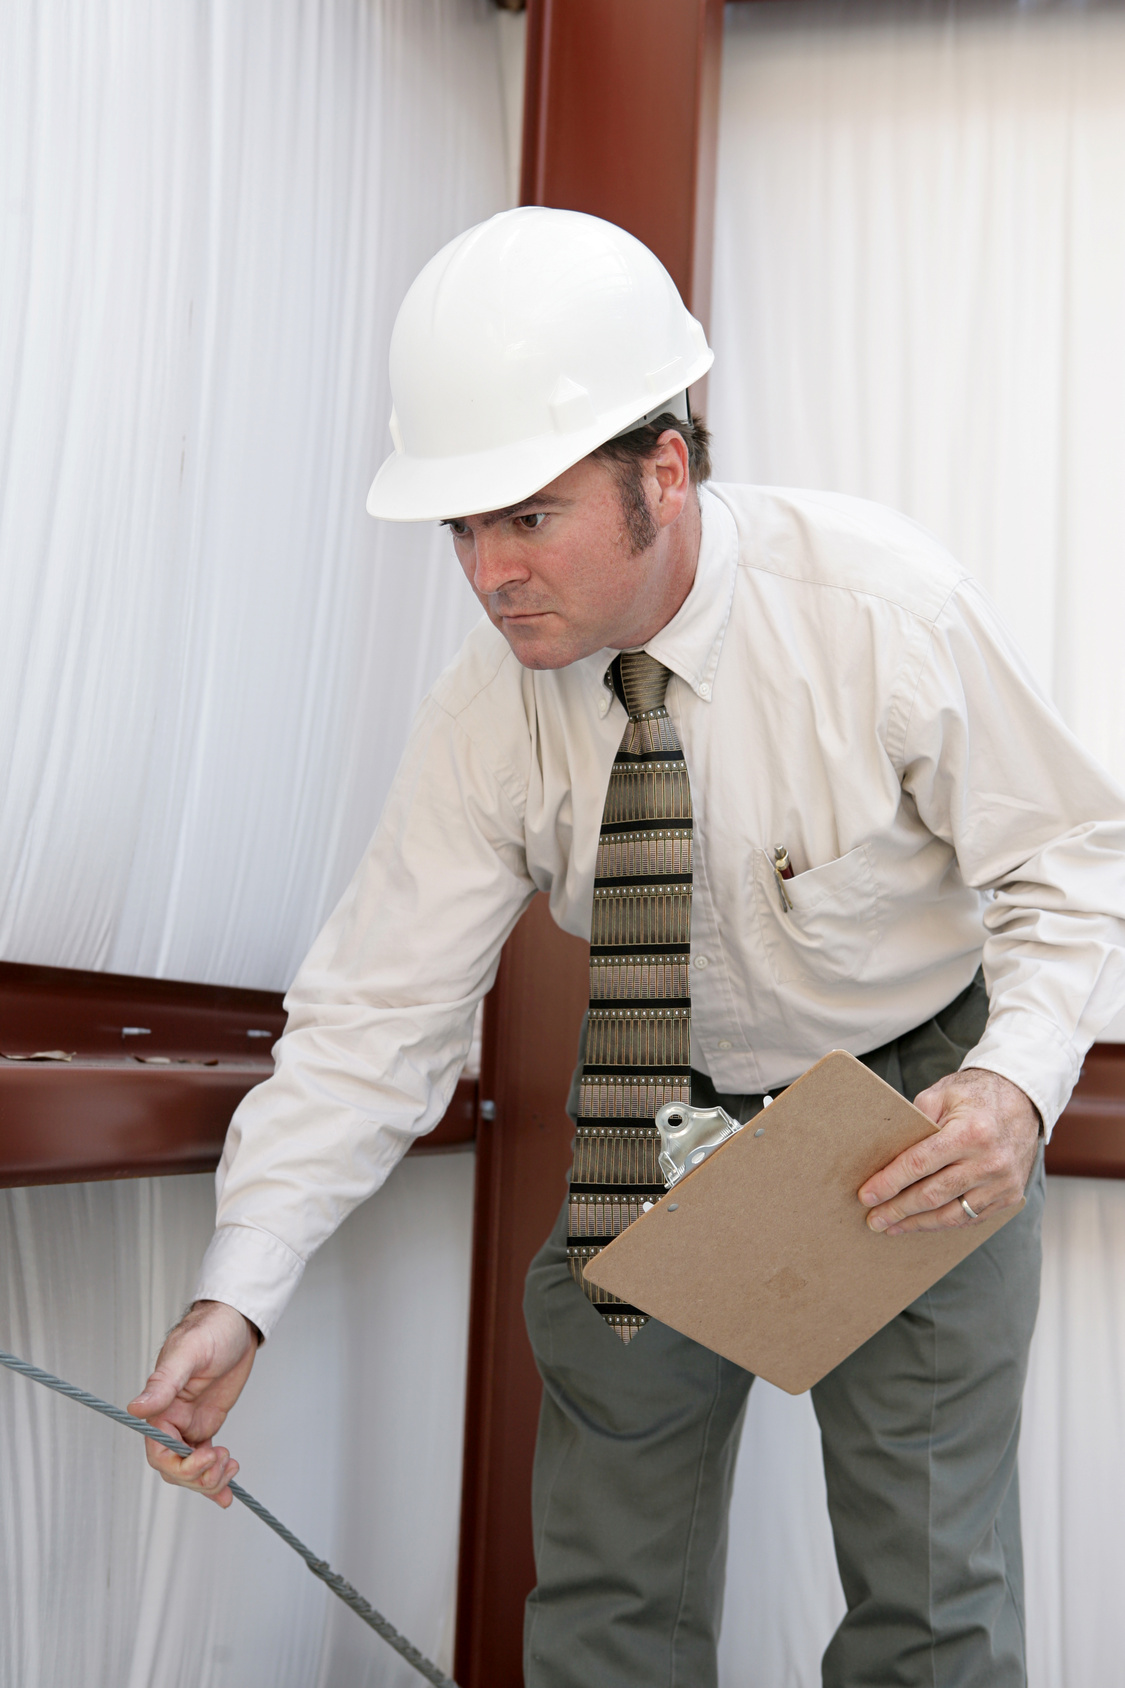 Building inspectors have to check many different materials for signs of damage or potential damage.